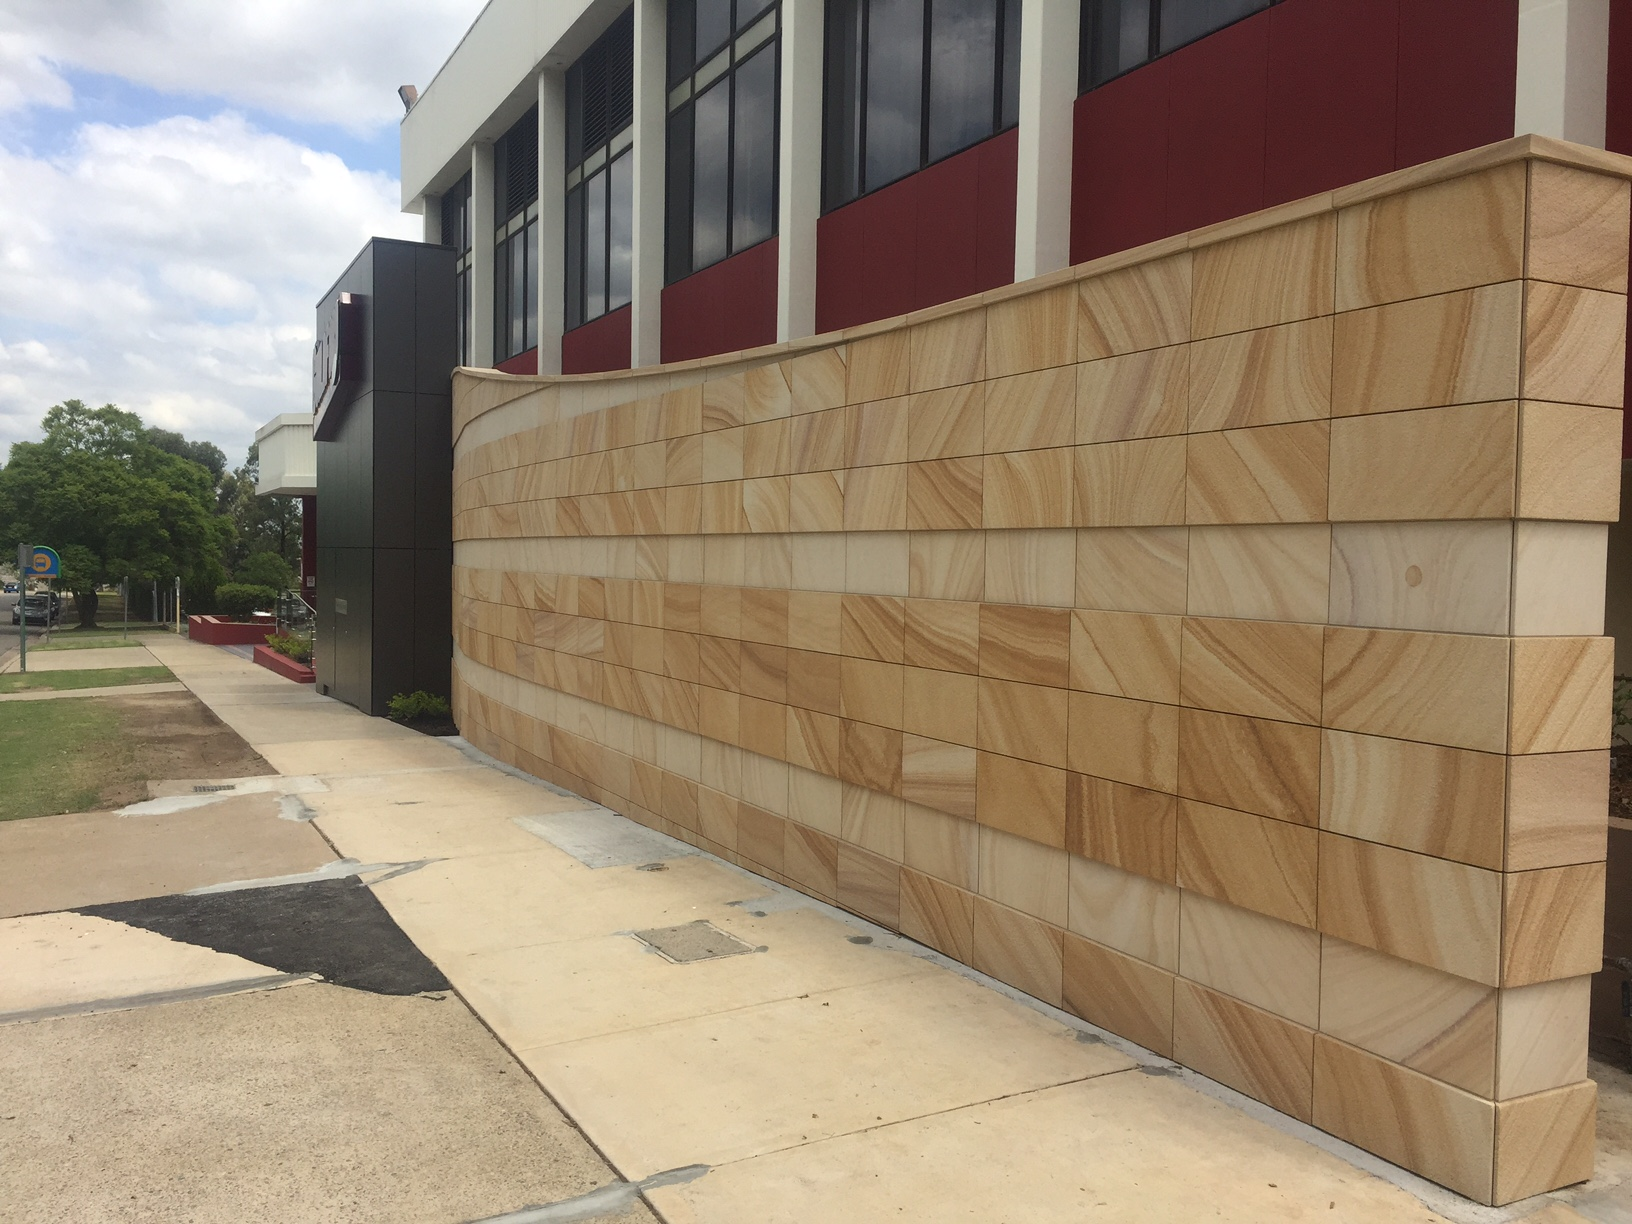 Guilford leagues club medium brown sawn cladding sawn capping birdsmouth joint - elite stonemasons  (2).JPG